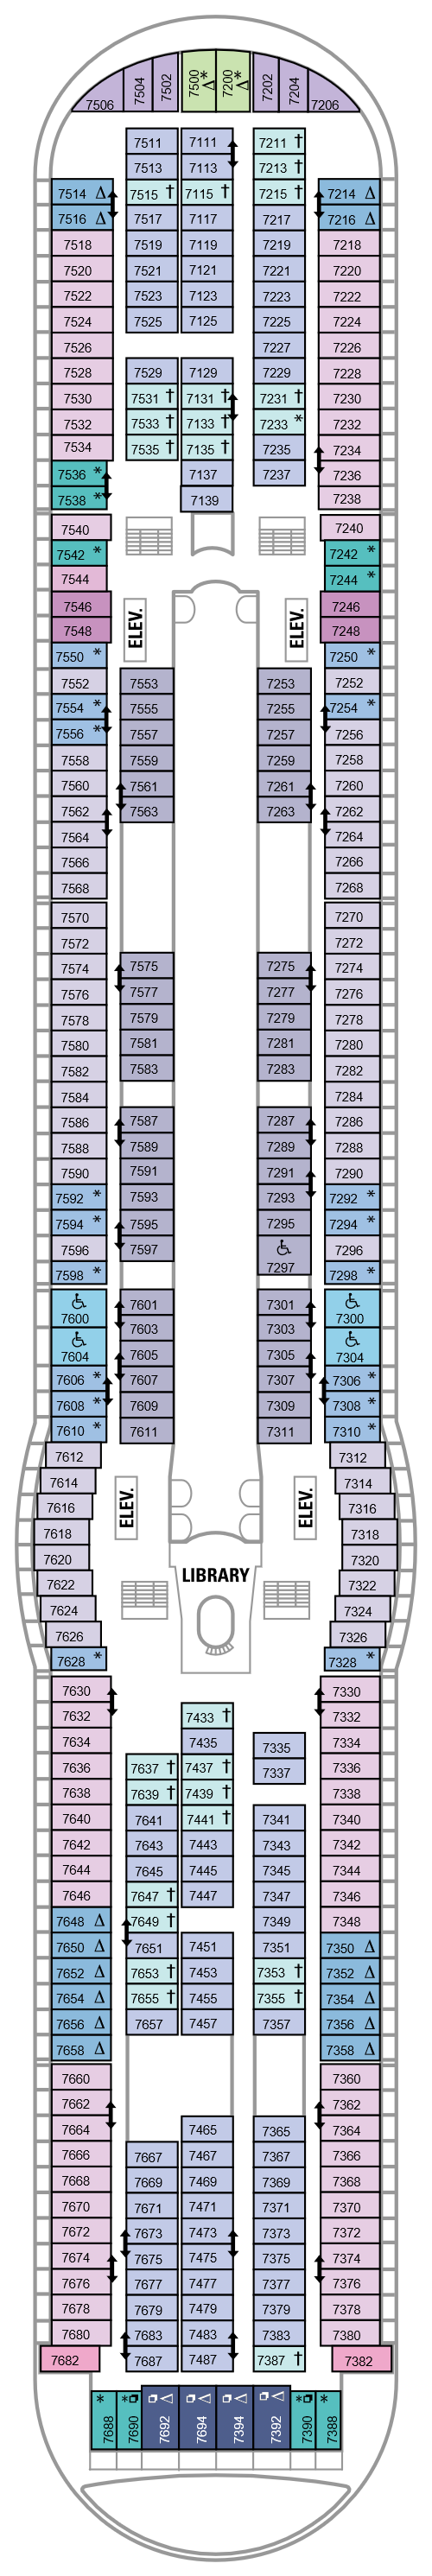 Voyager Of The Seas Deck 7 layout